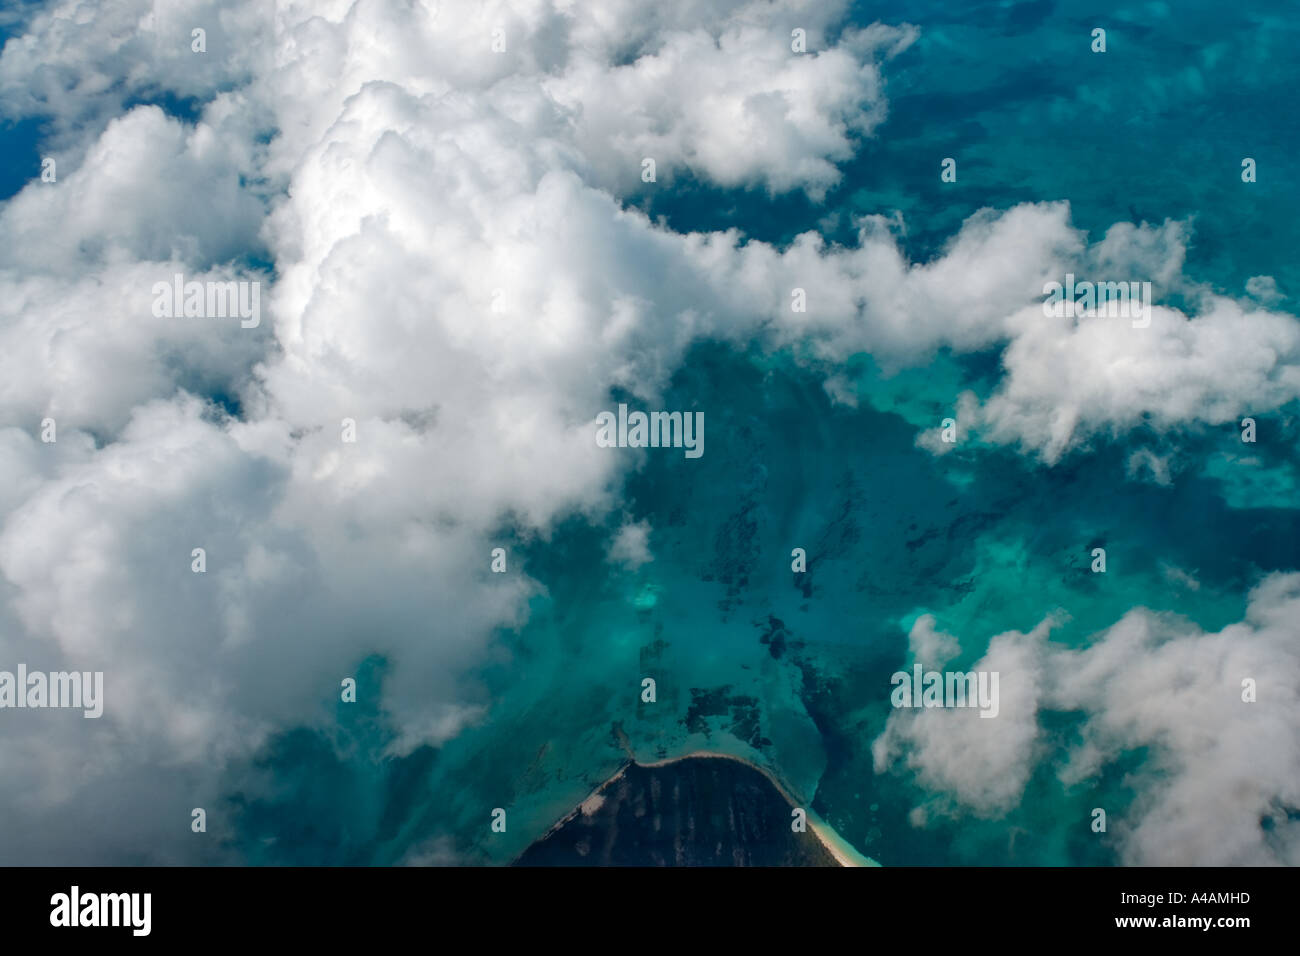 Aerial view looking down through clouds at the tip of a ...